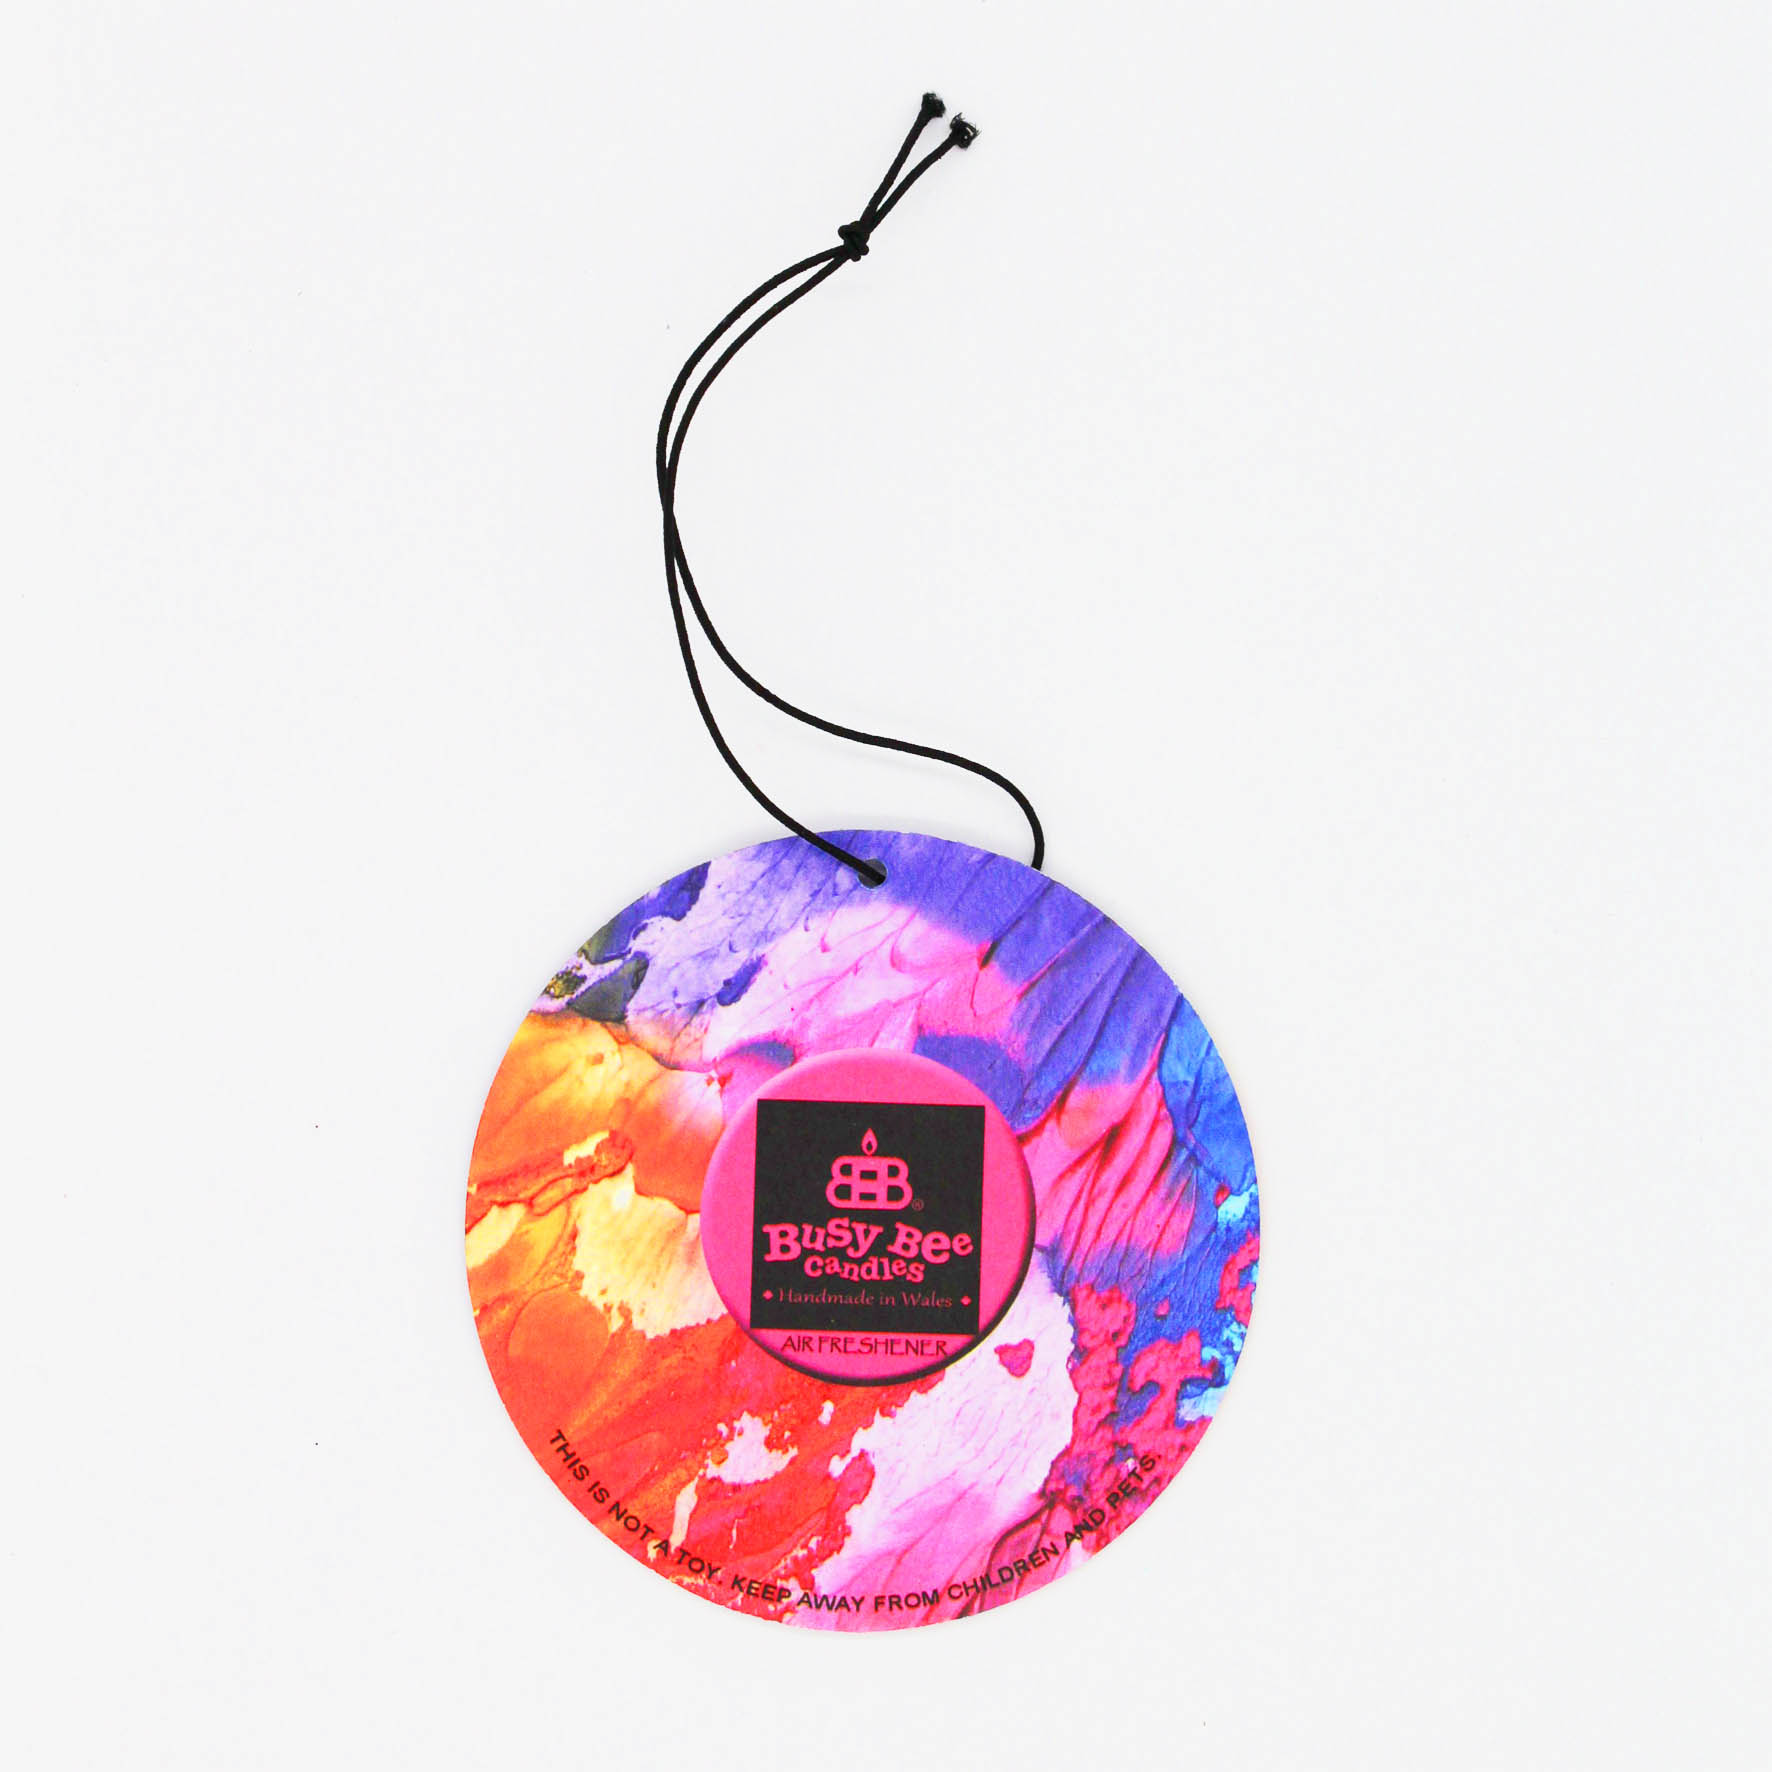 Bramble Jelly Hanging Air Freshener